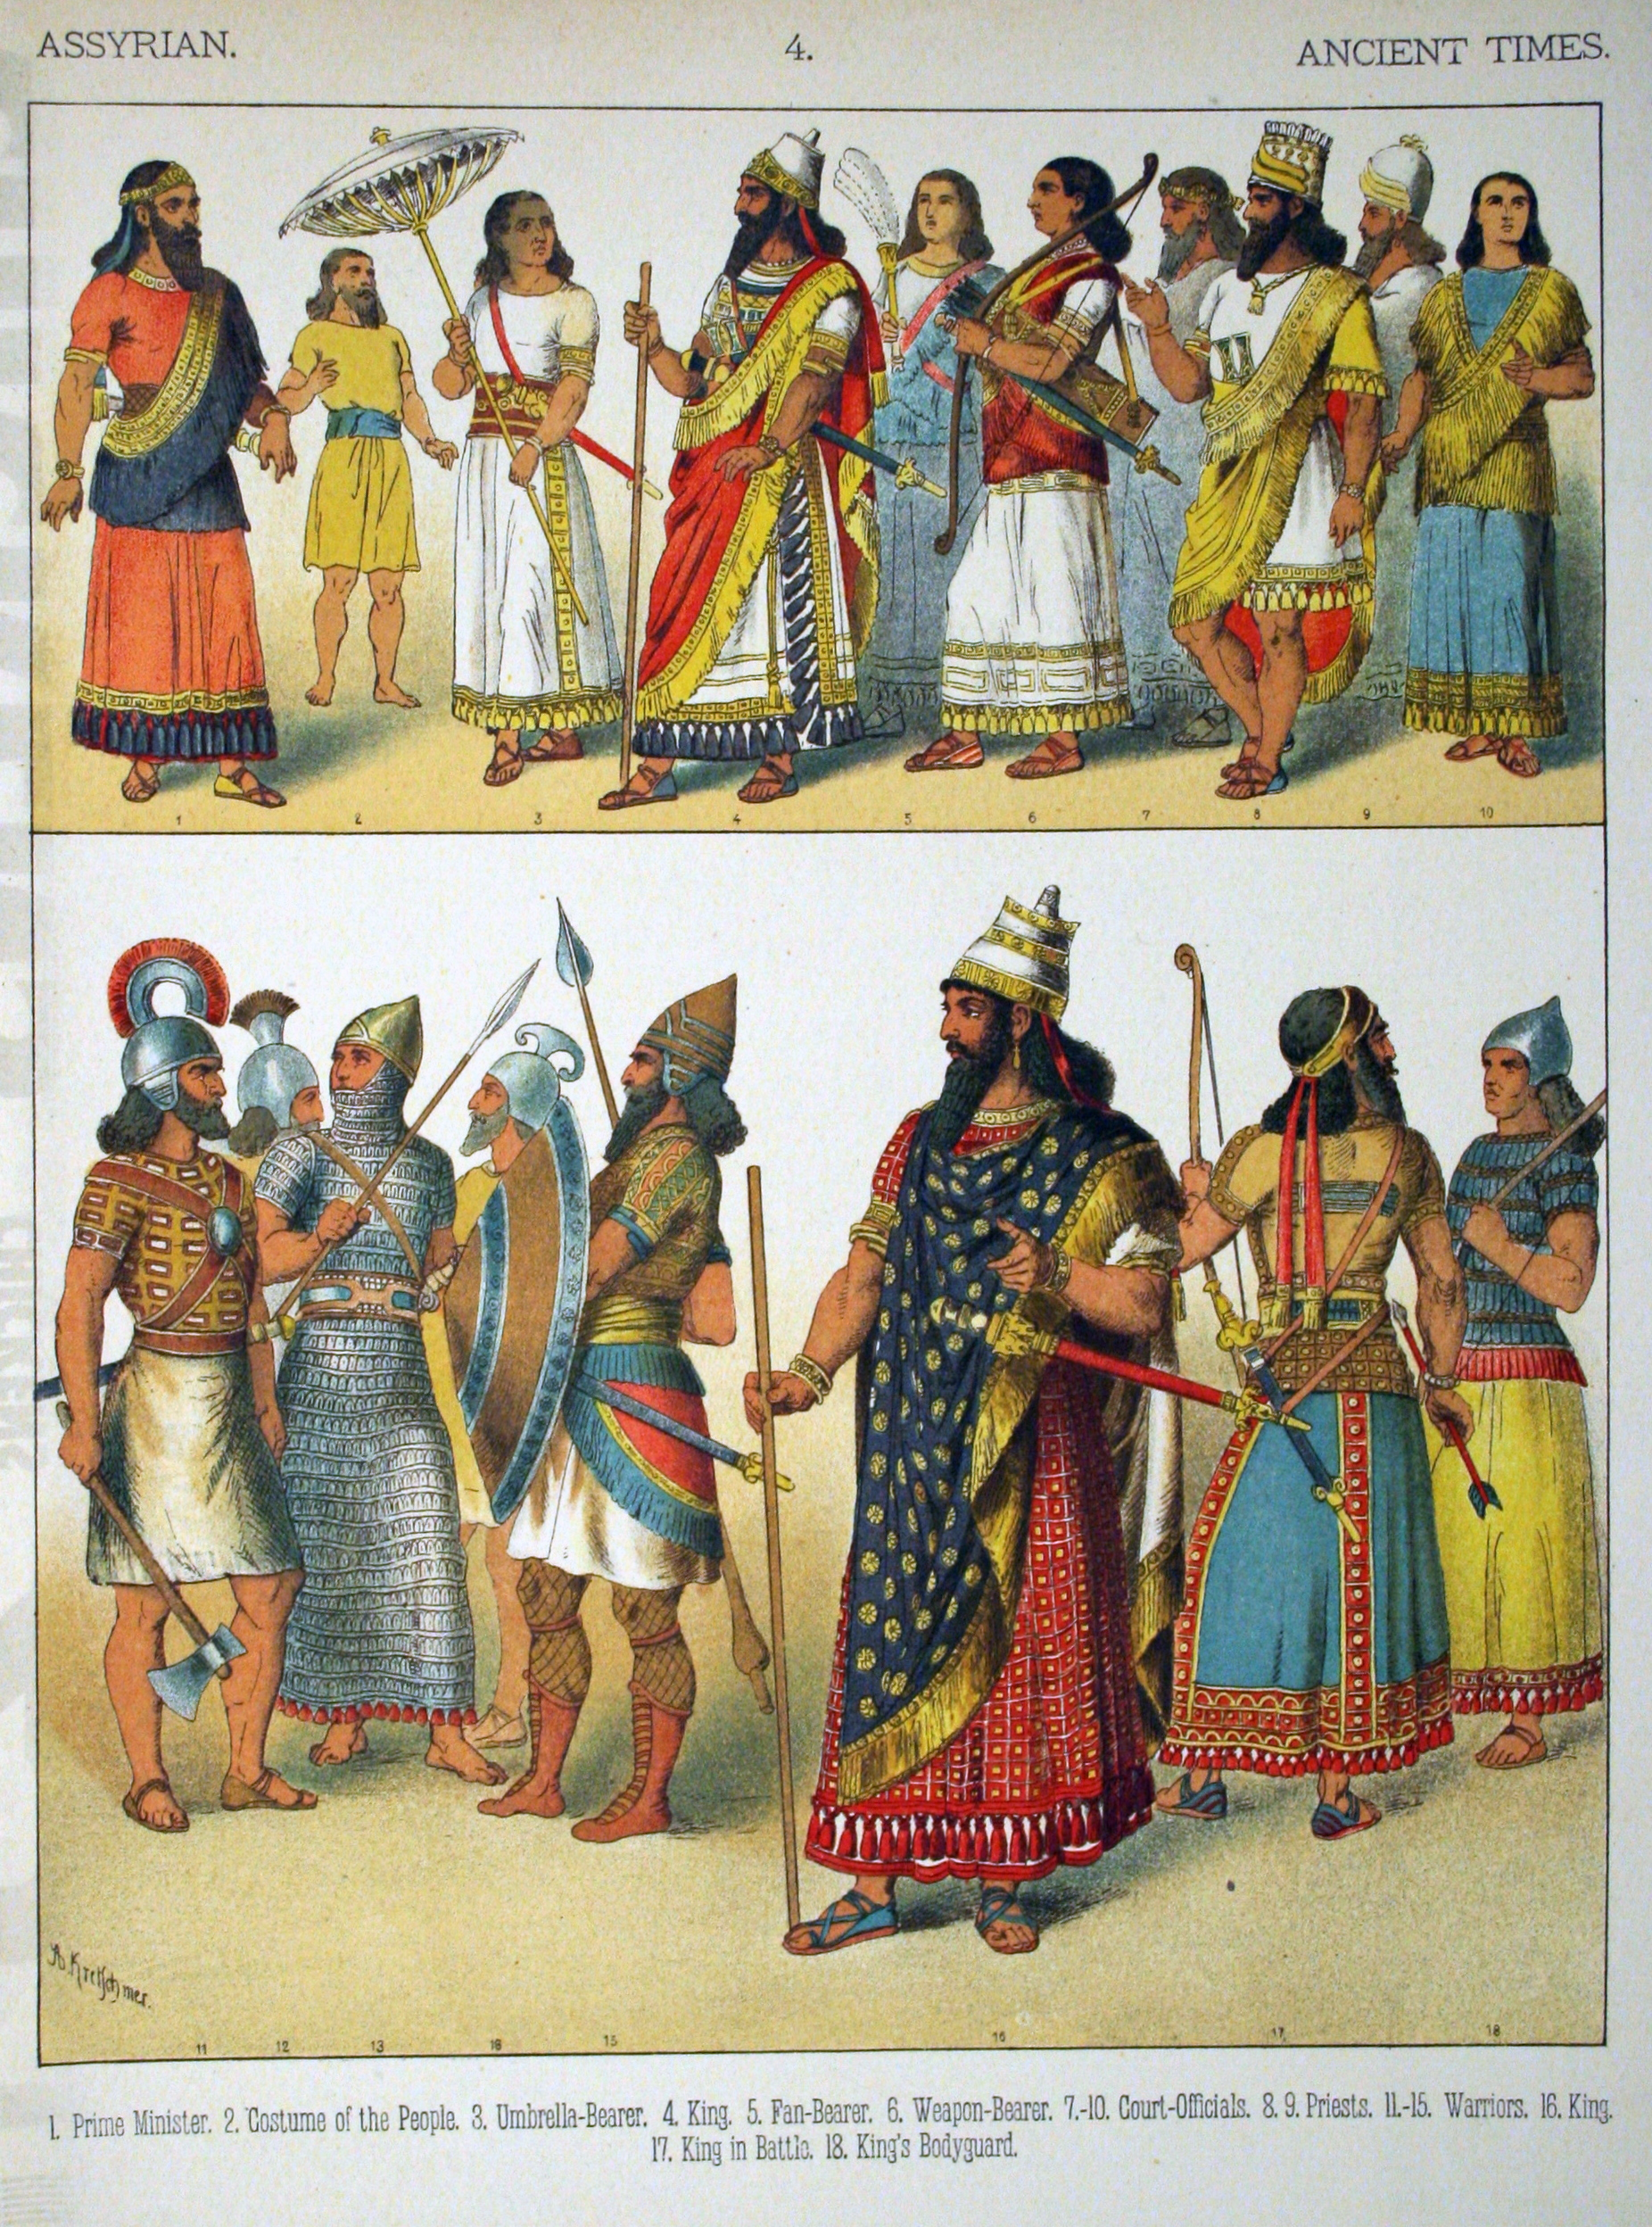 https://i2.wp.com/upload.wikimedia.org/wikipedia/commons/c/c6/Ancient_Times%2C_Assyrian._-_004_-_Costumes_of_All_Nations_%281882%29.JPG